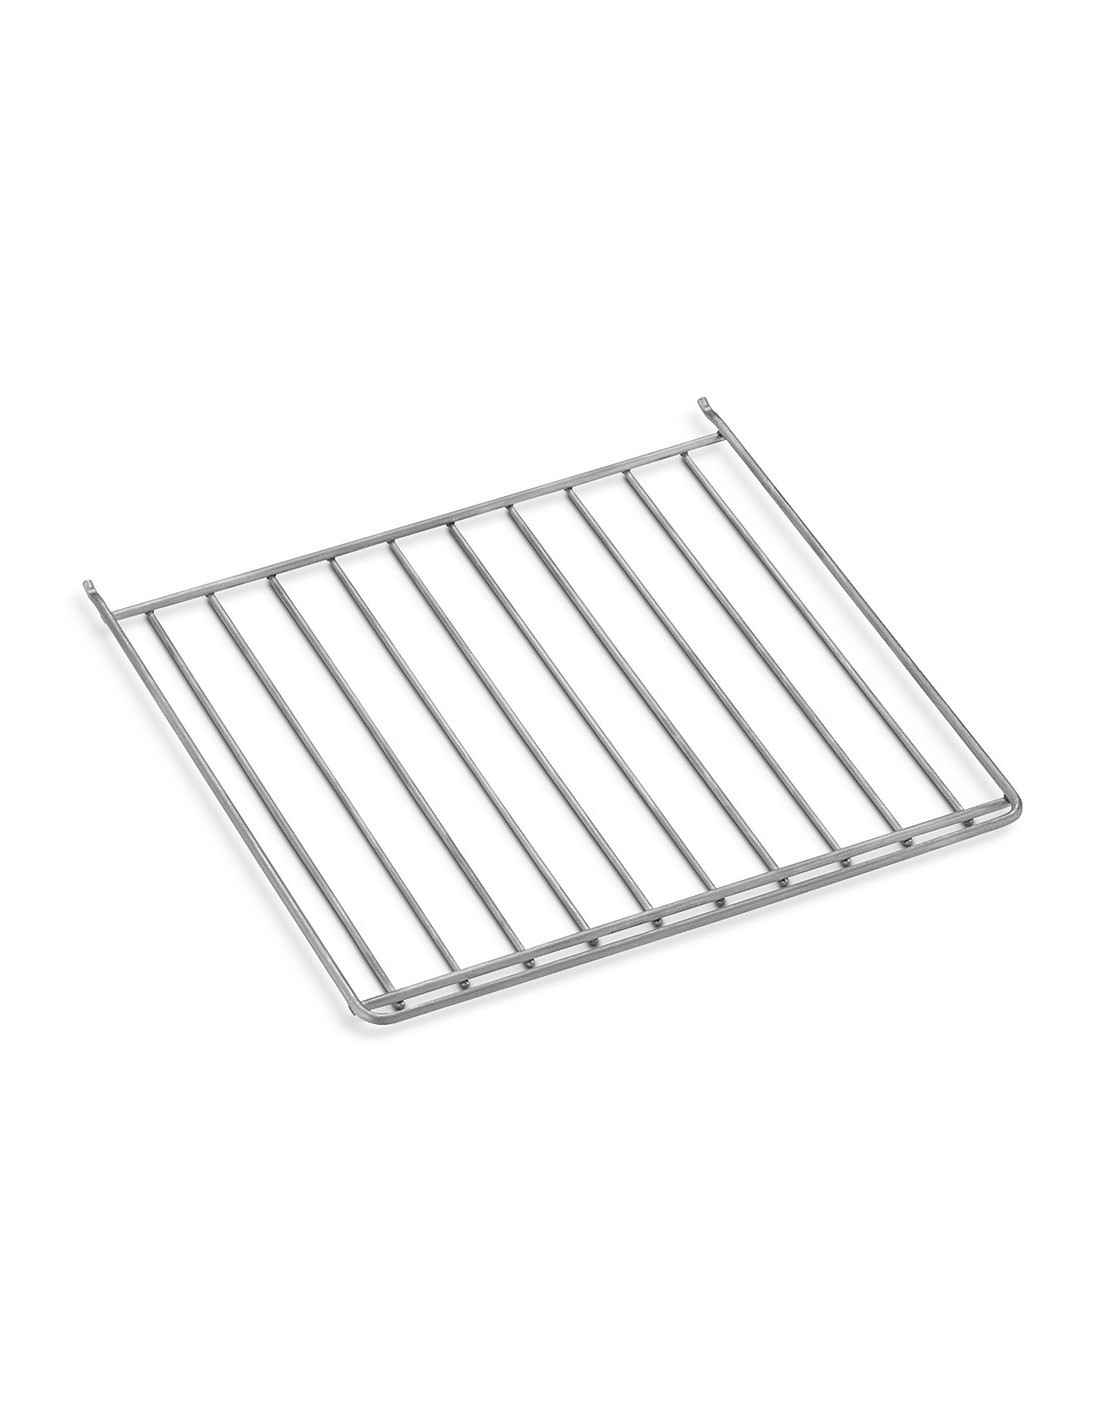 Grille volaille pour syst me vertical weber - Grille pour barbecue vertical ...